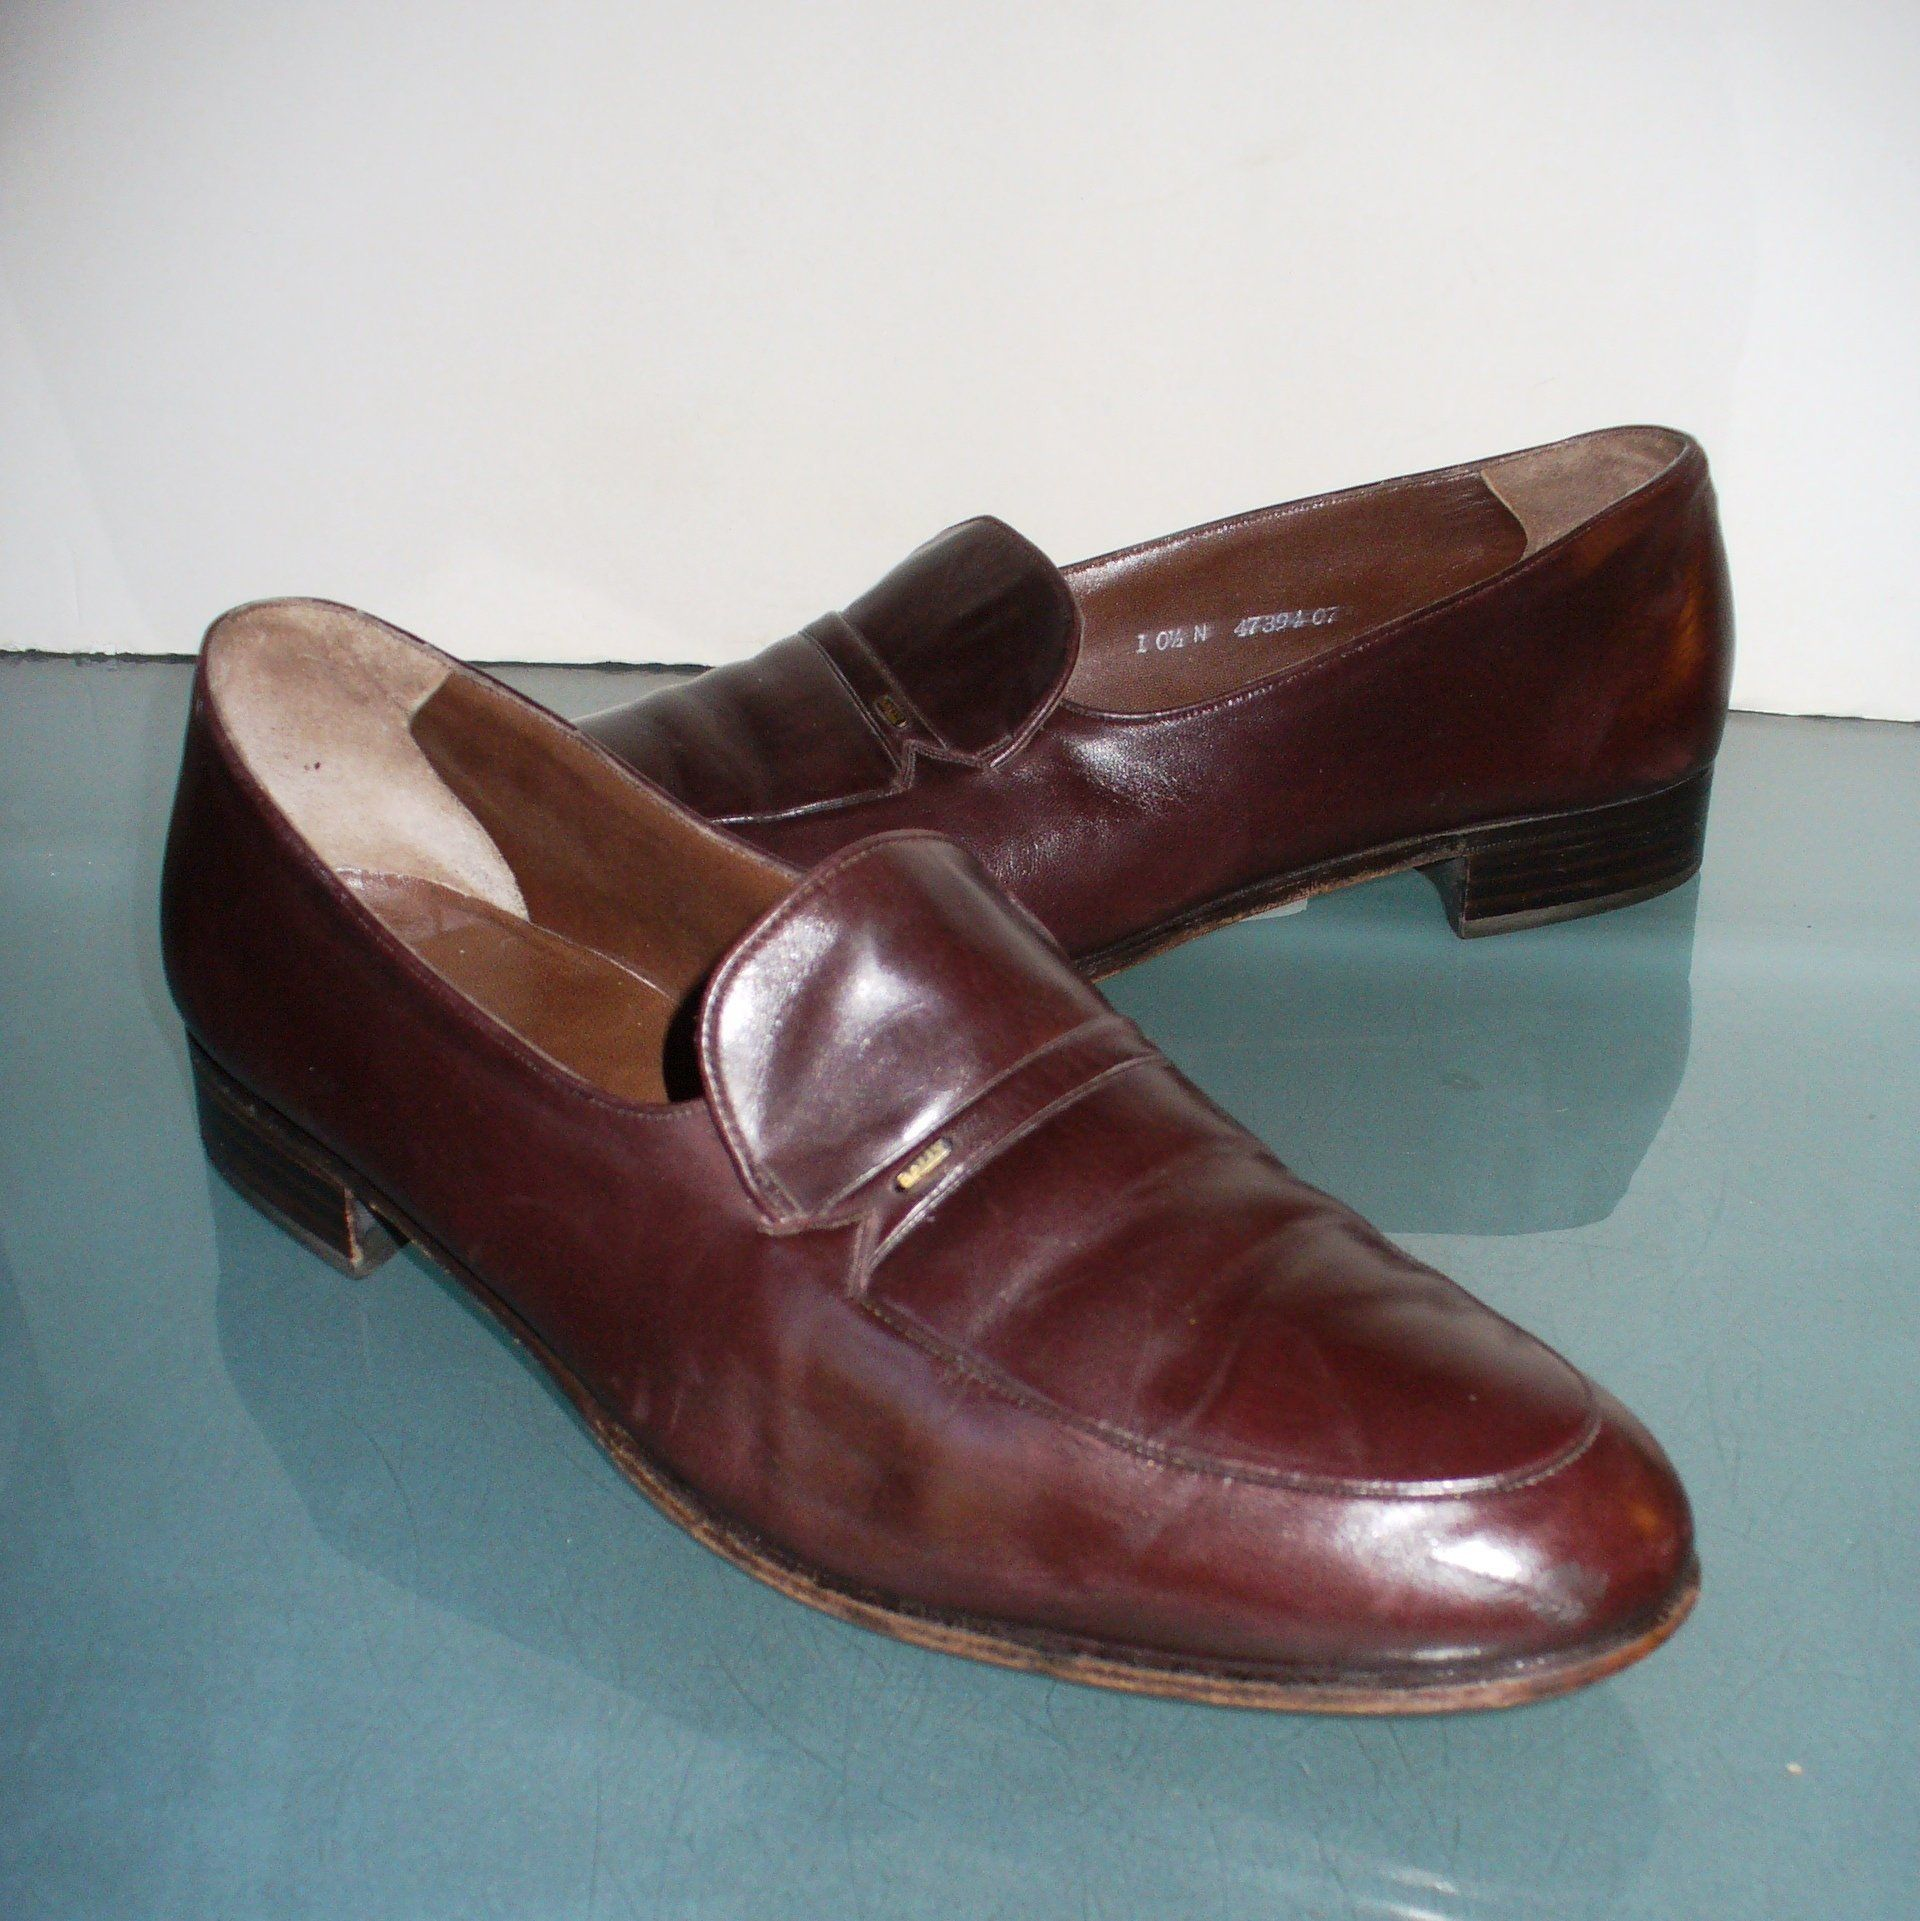 76d8d3662f5 Bally Switzerland Loafers Size 10.5 N by TheOldBagOnline on Etsy